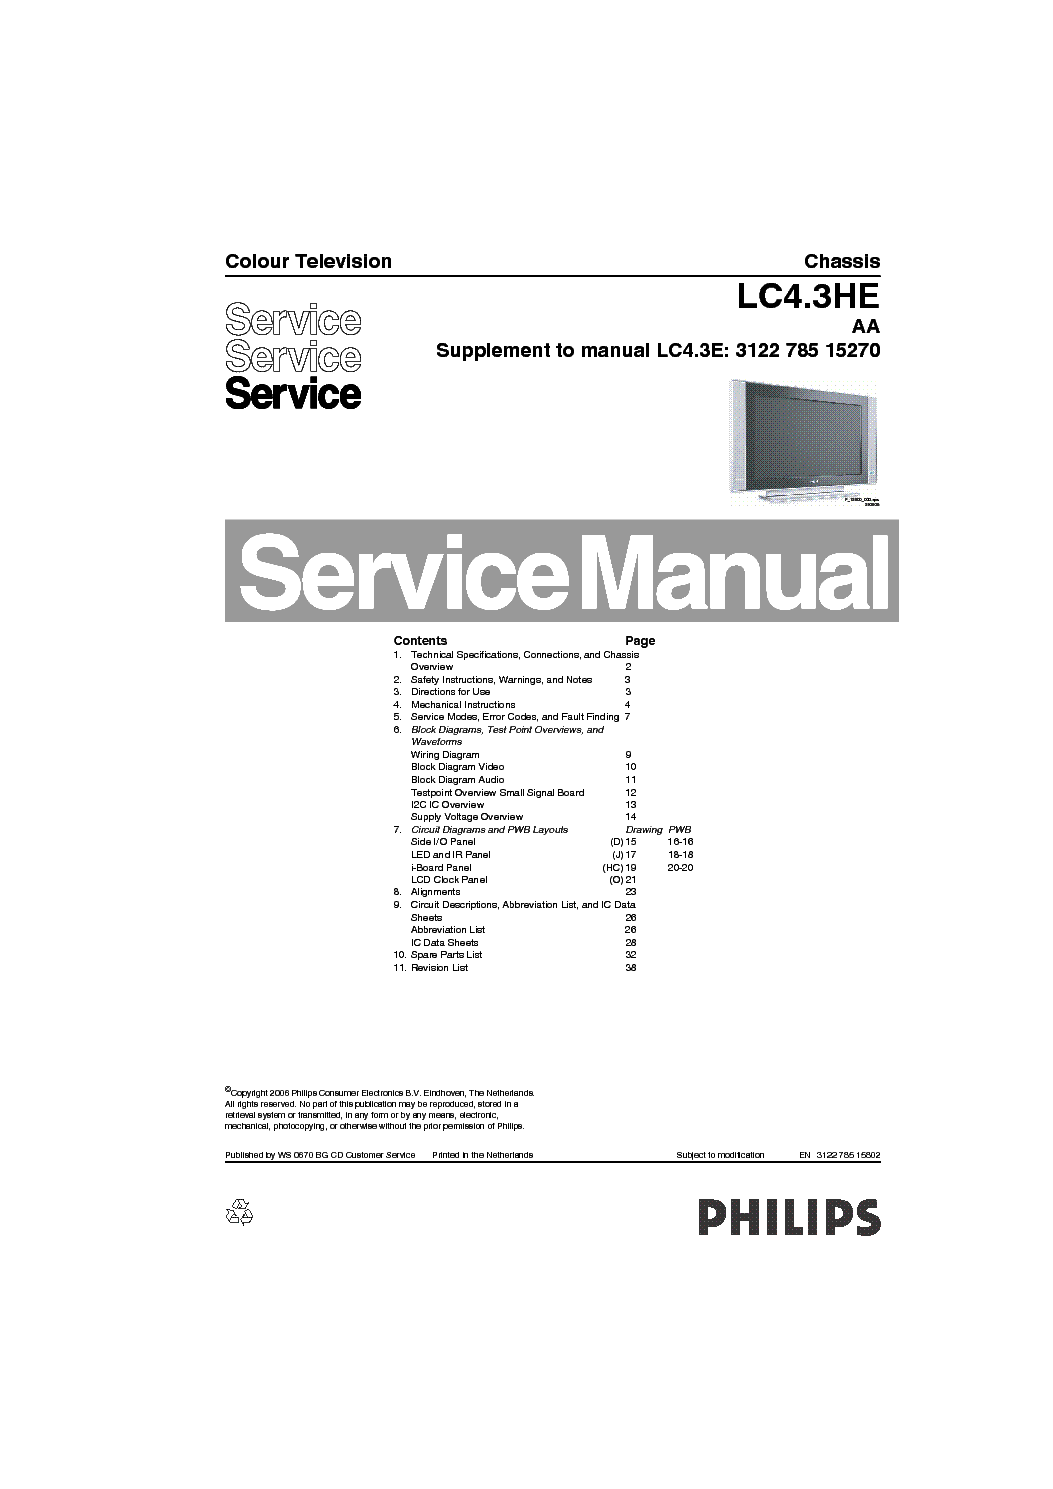 PHILIPS CHASSIS LC4.3HE-AA service manual (1st page)